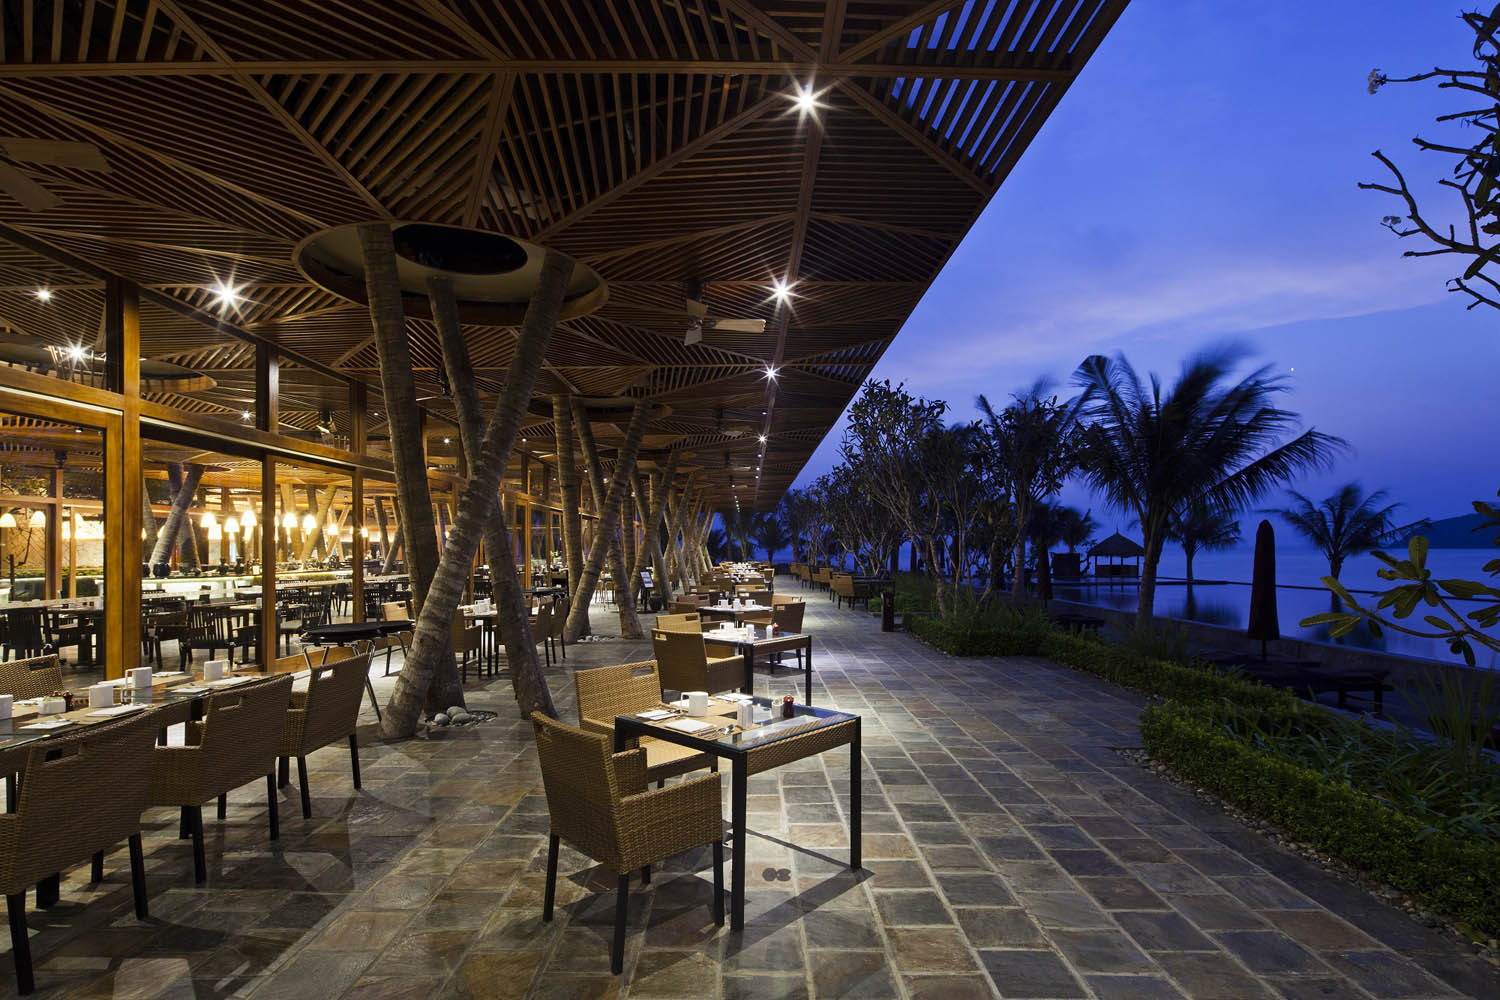 Bacaro Restaurant of Amiana Resort design Hùng Hưng-Lib.A